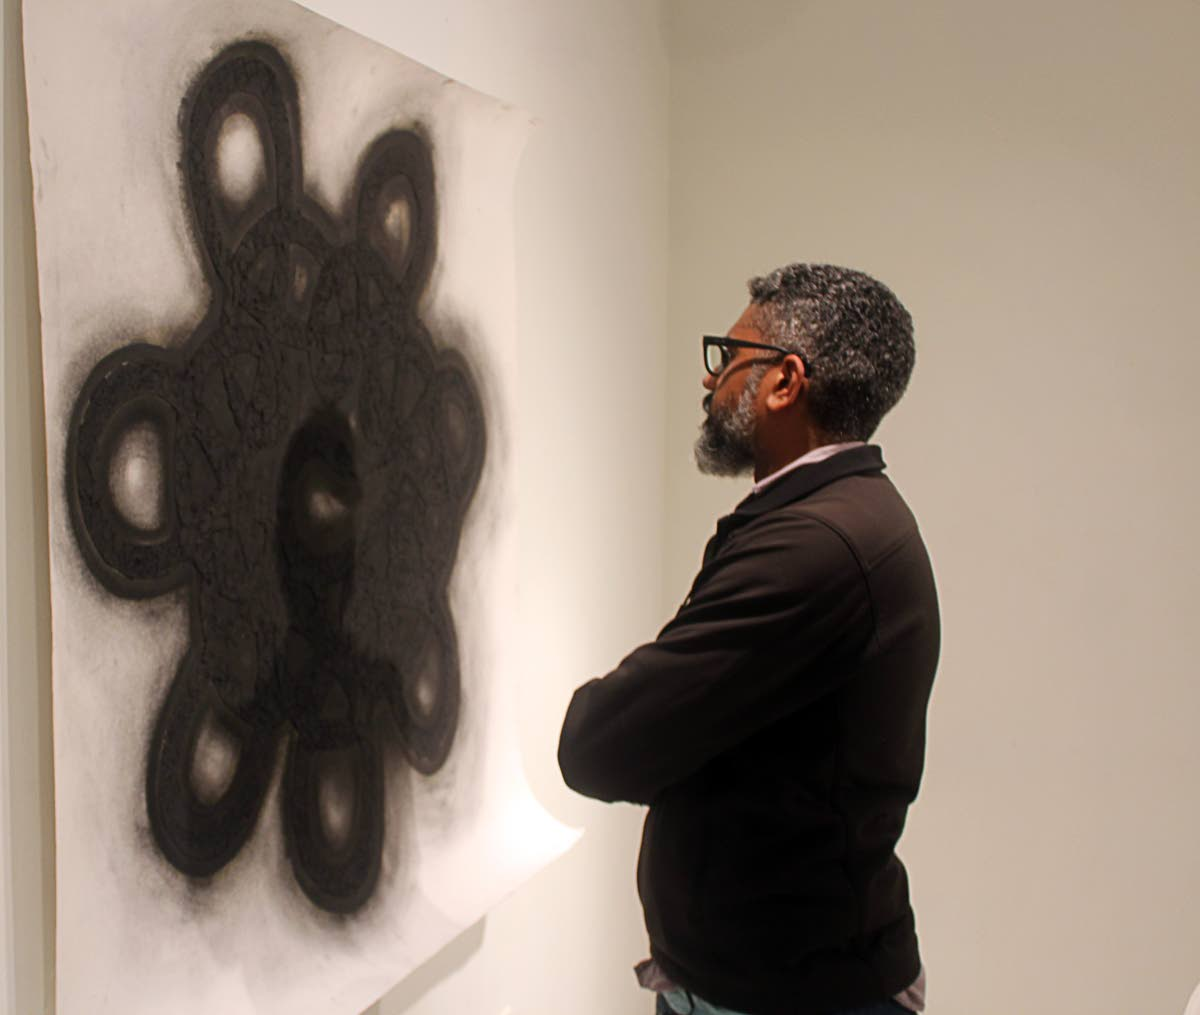 Nikolai Noel ponders the impact of one of his pieces for his exhibition The Last Place on Earth/The Edge of All Things at Medulla Art Gallery, Woodbrook. PHOTO BY ENRIQUE ASSOON